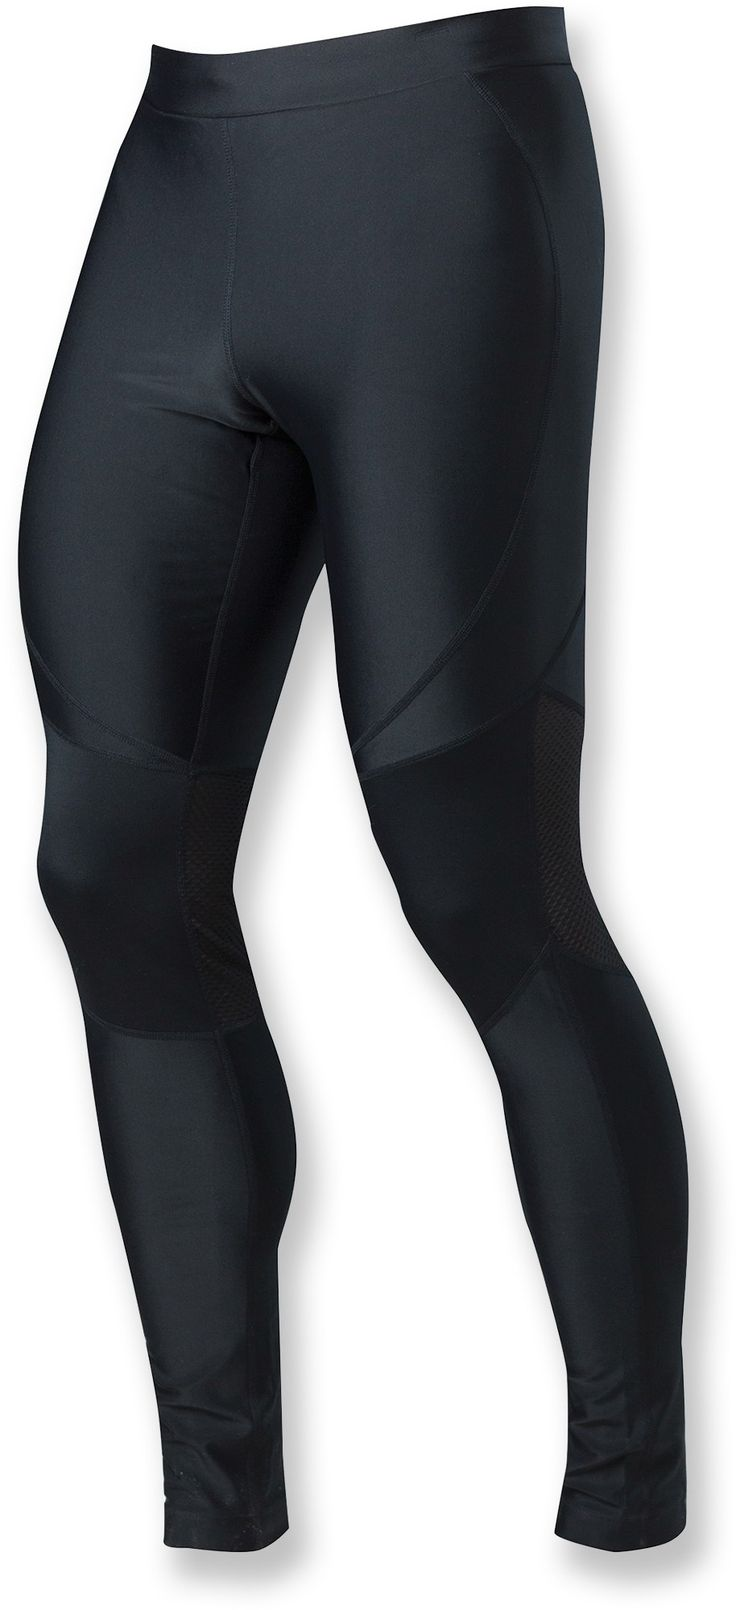 GoLite Castlewood Canyon Running Tights - Men's - Overstock